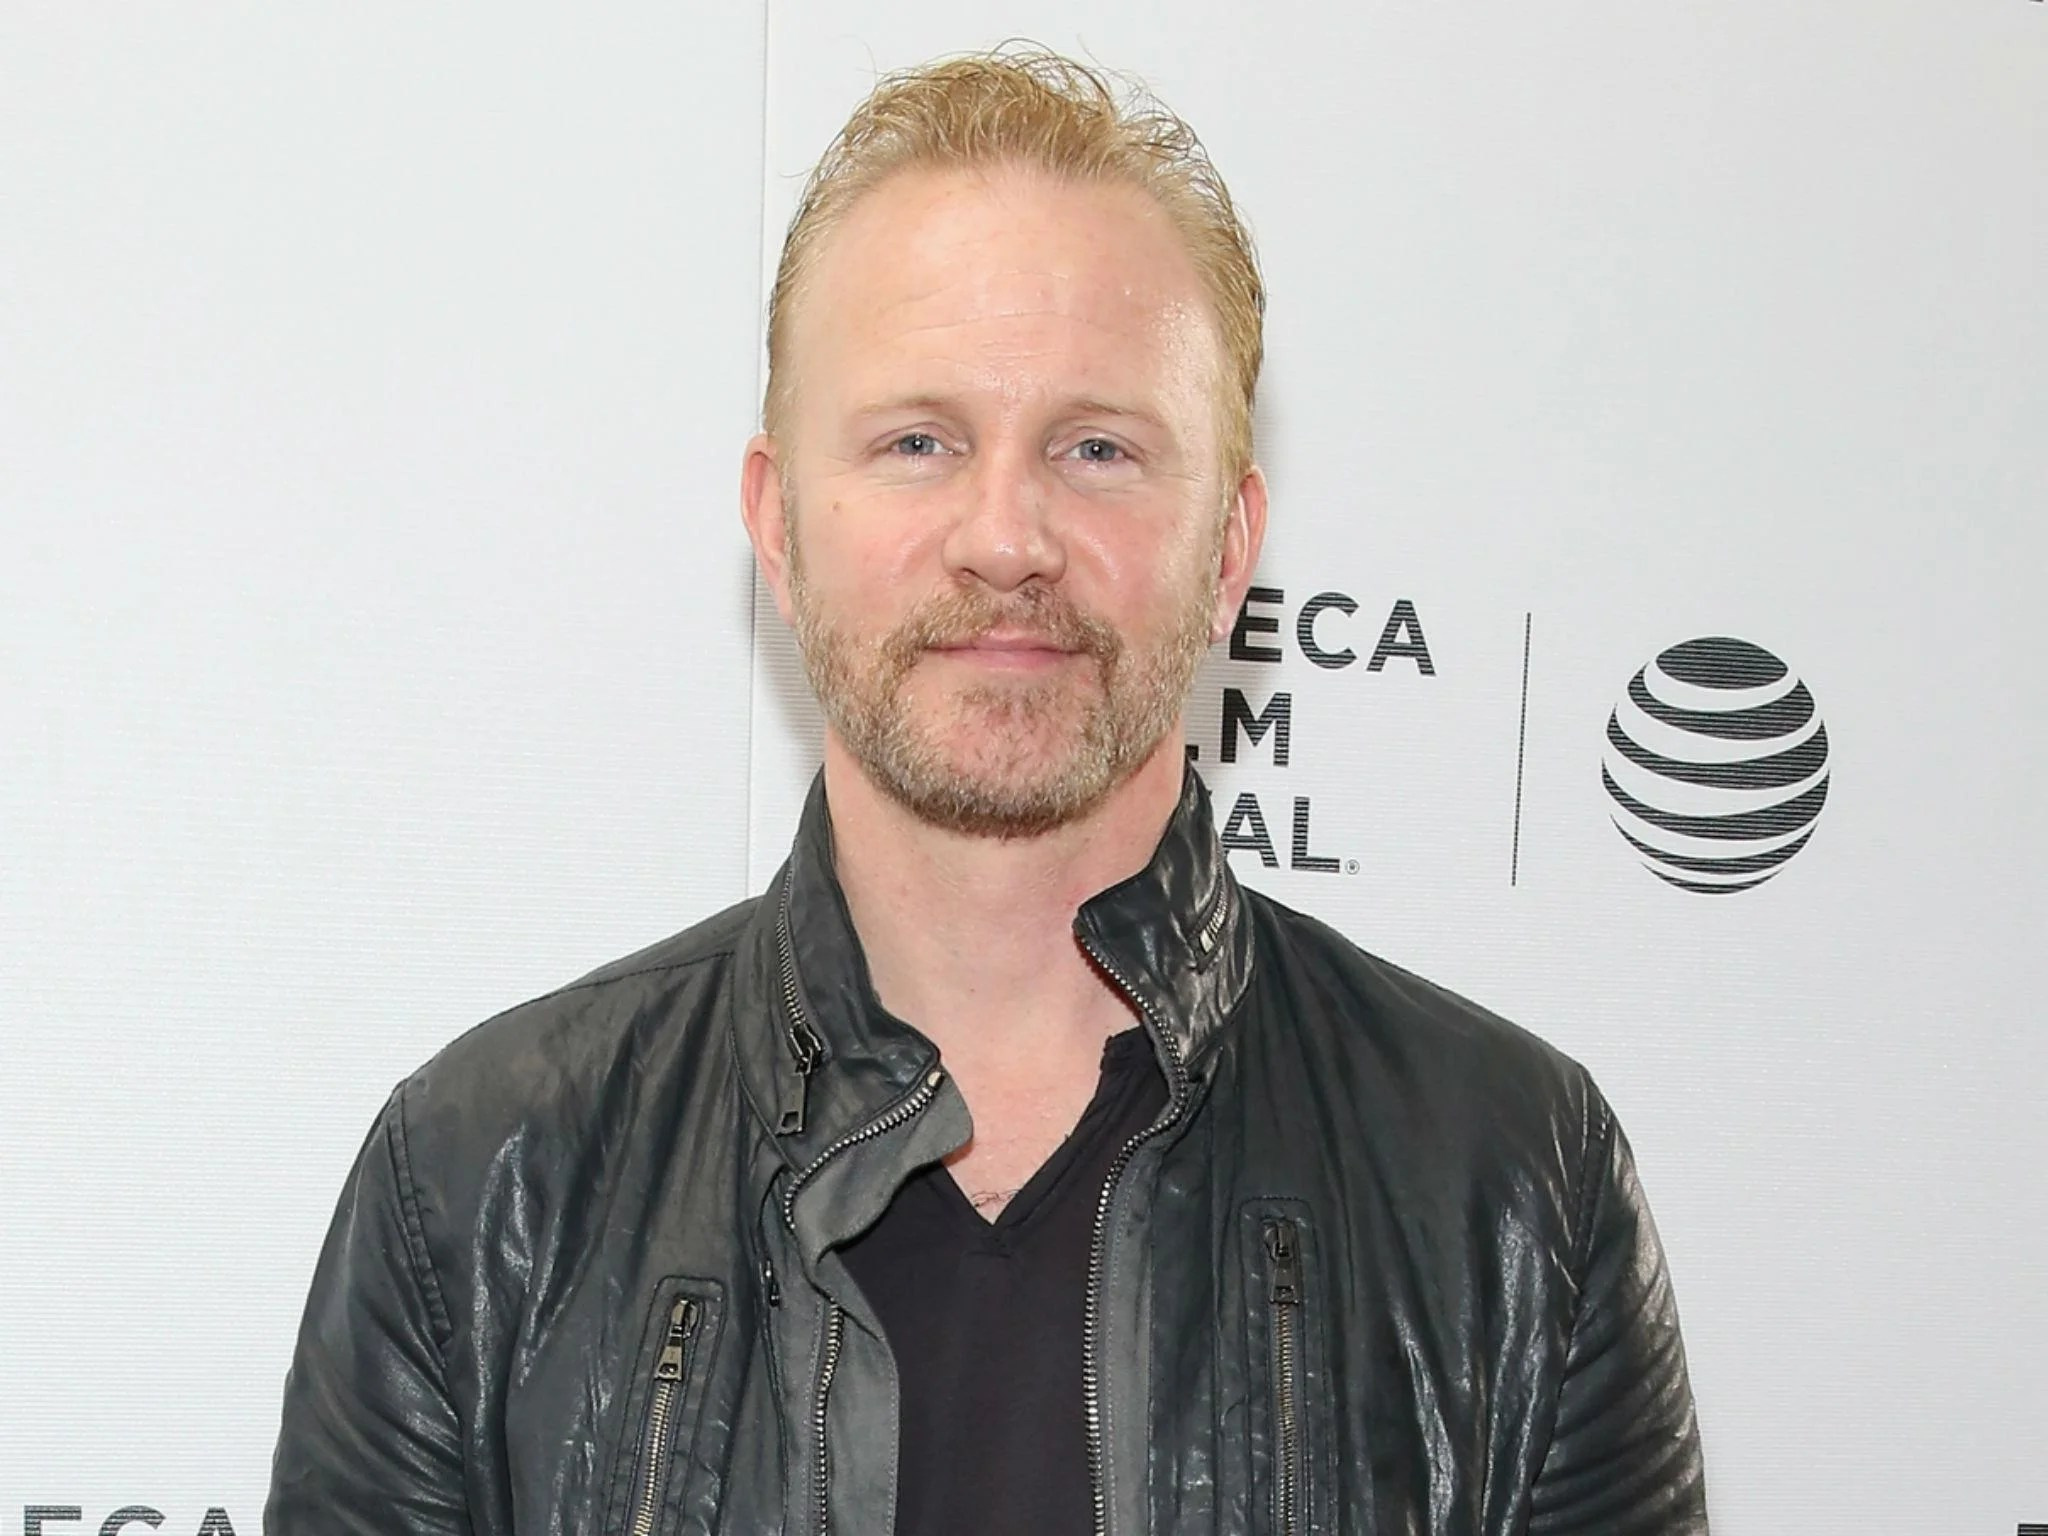 Morgan Spurlock From Super Size Me Opens Fast Food